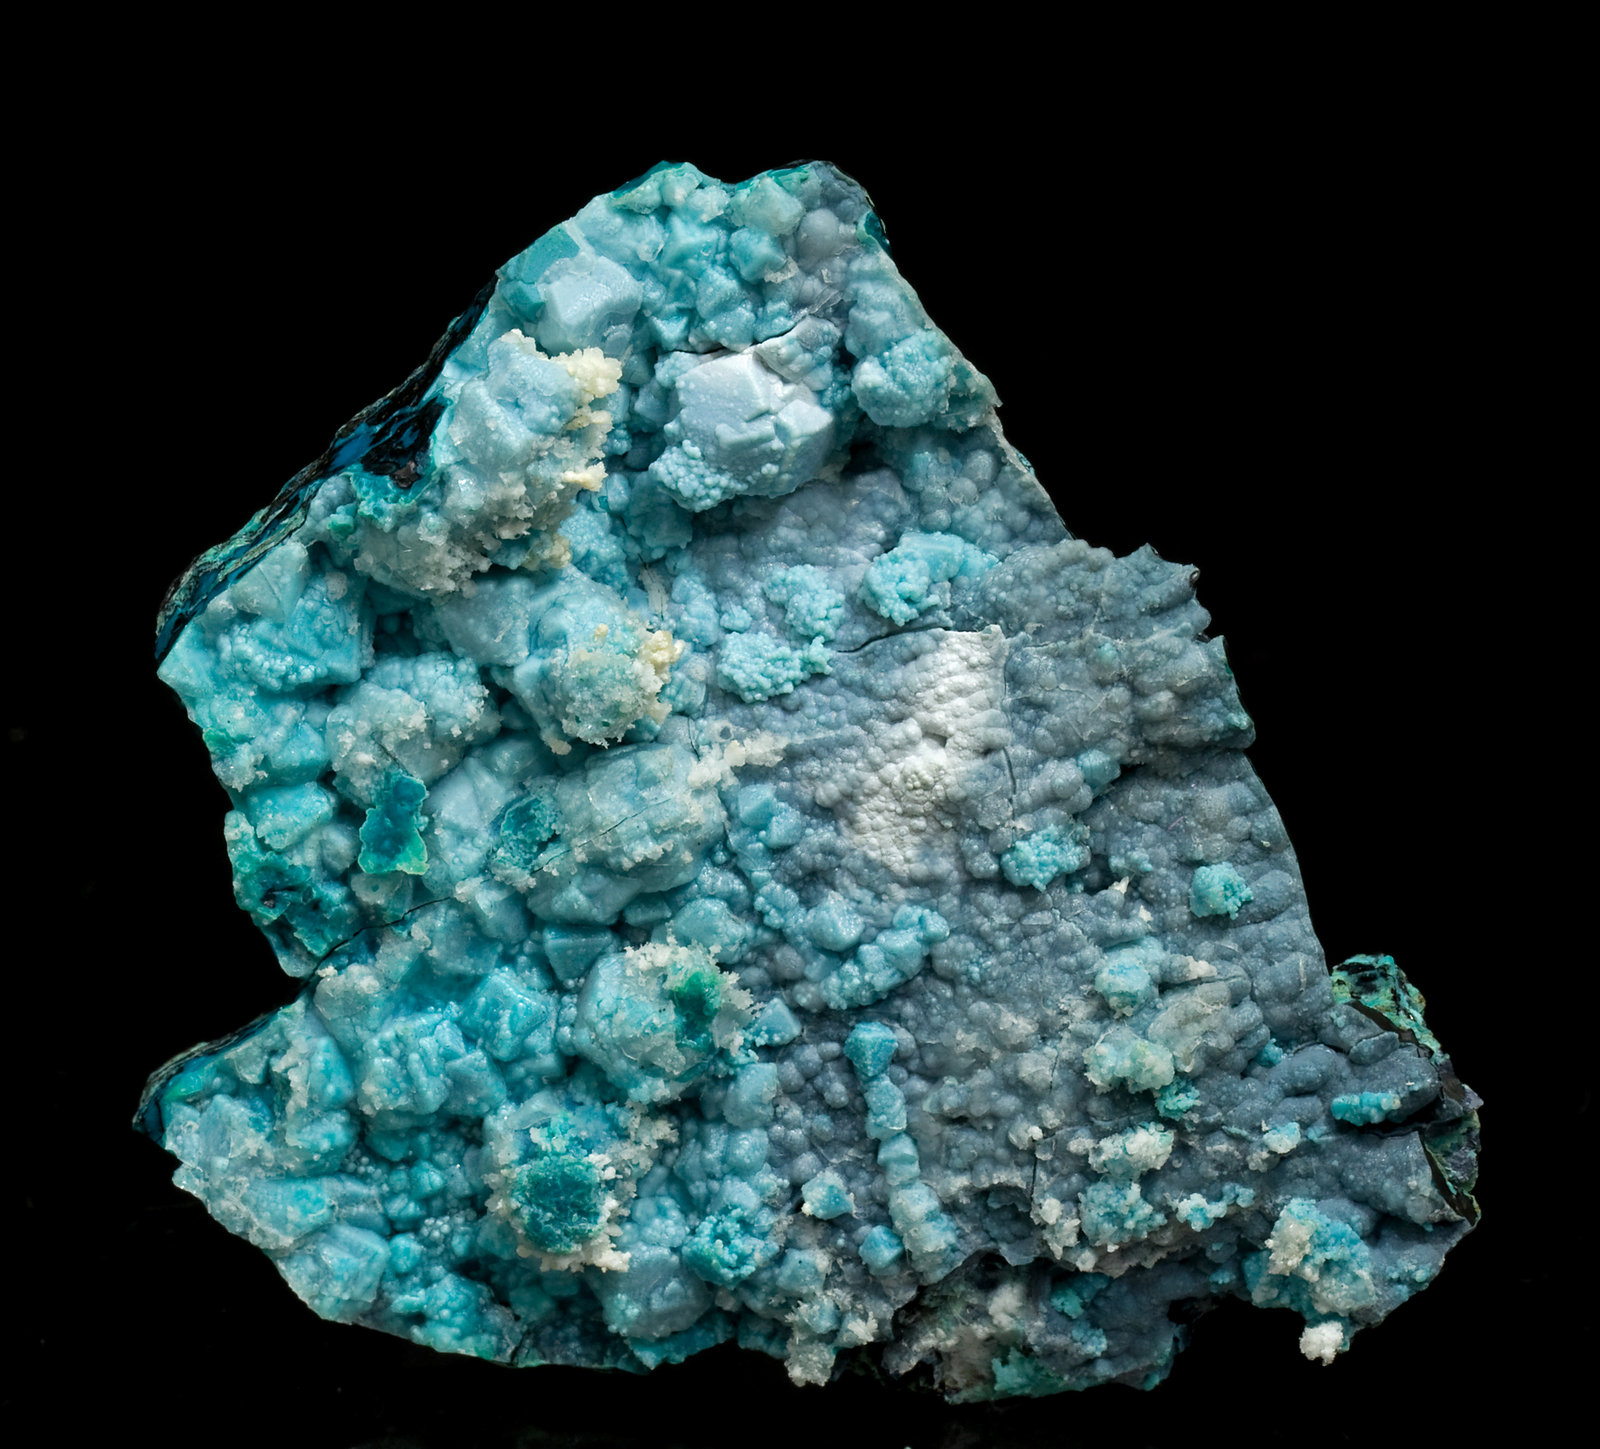 specimens/s_imagesV1/Chrysocolla-TC36V1f.jpg